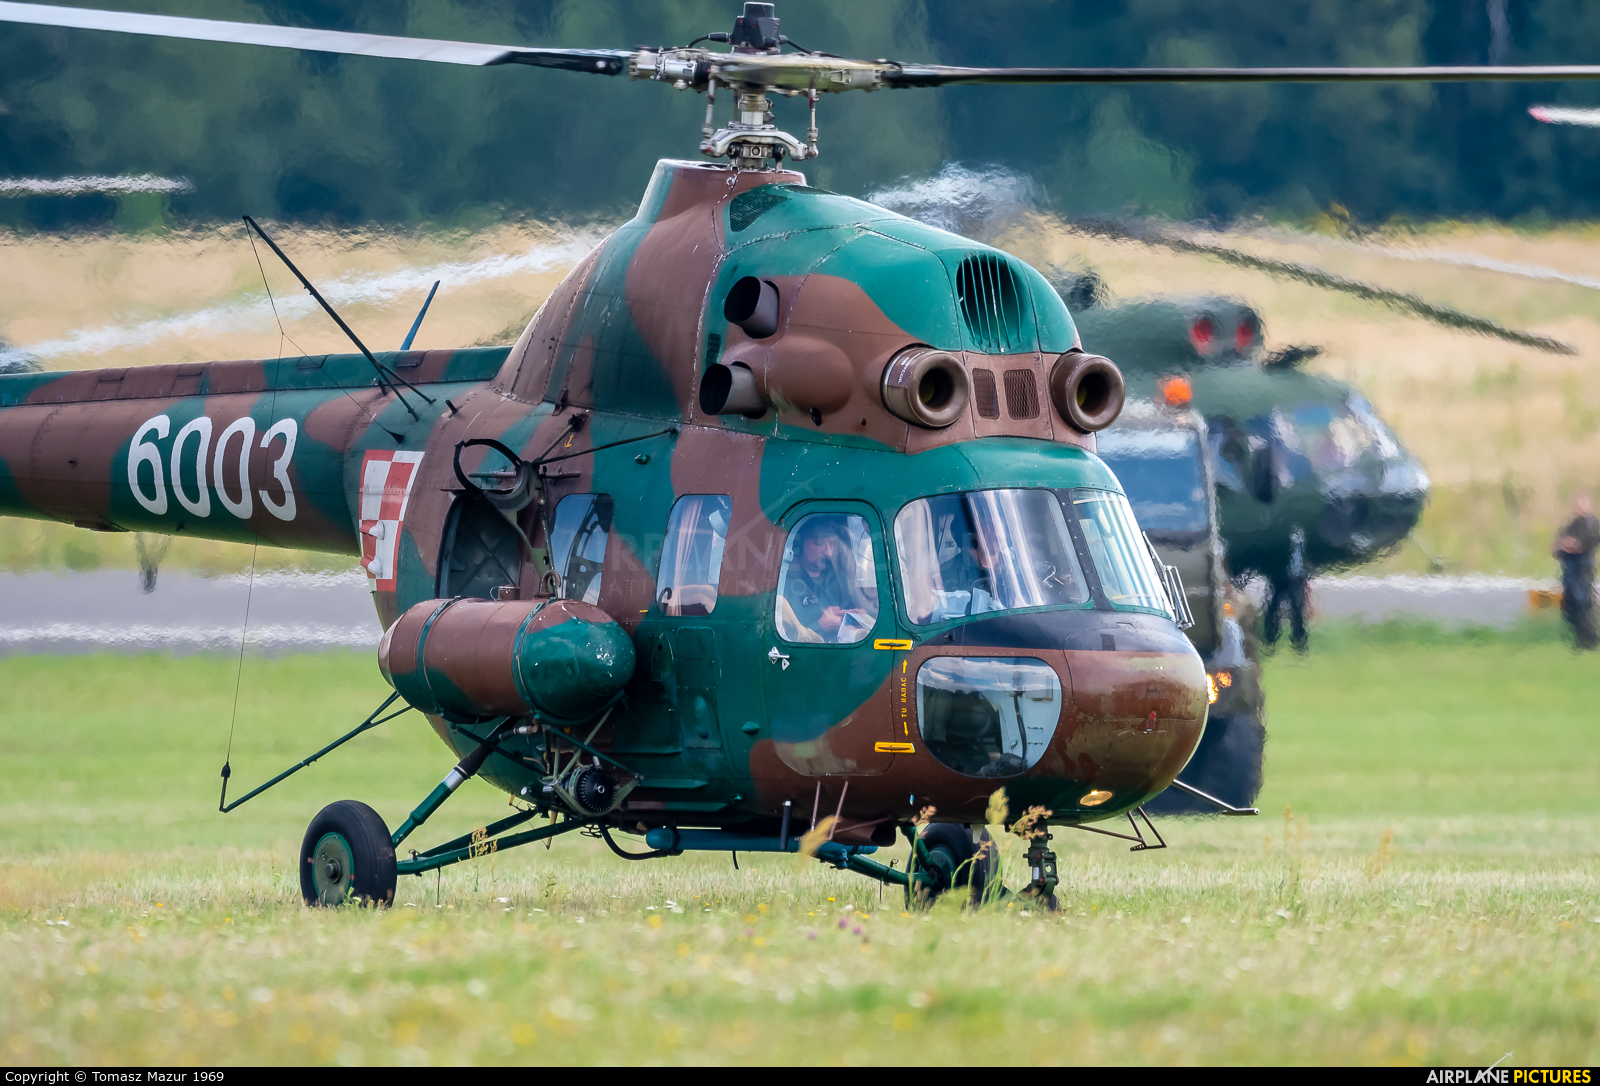 Poland - Army 6003 aircraft at Katowice Muchowiec